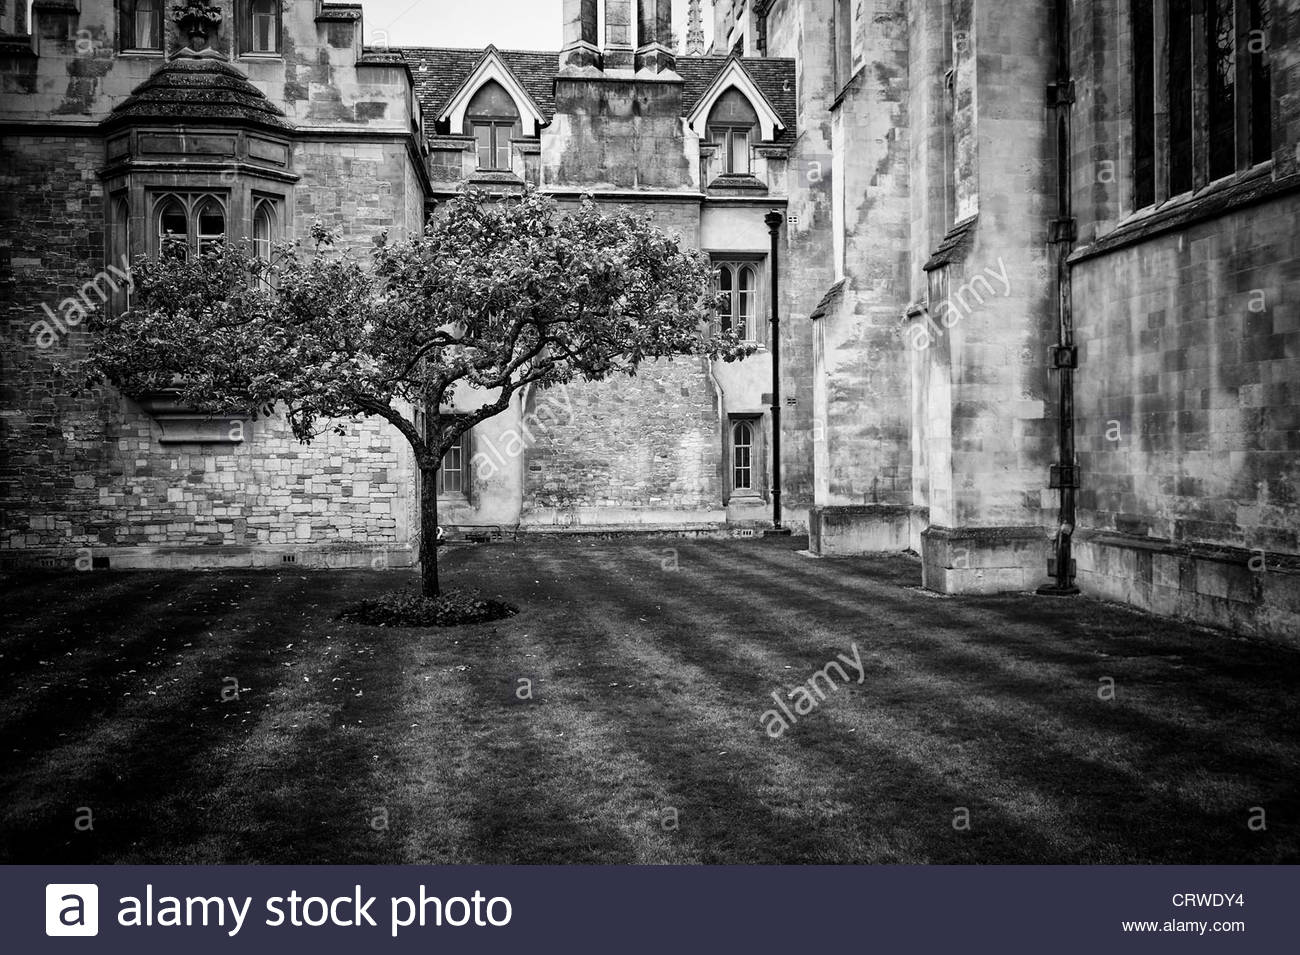 Sir isaac newton apple tree cambridge em preto e branco foto imagem sir isaac newton apple tree cambridge em preto e branco thecheapjerseys